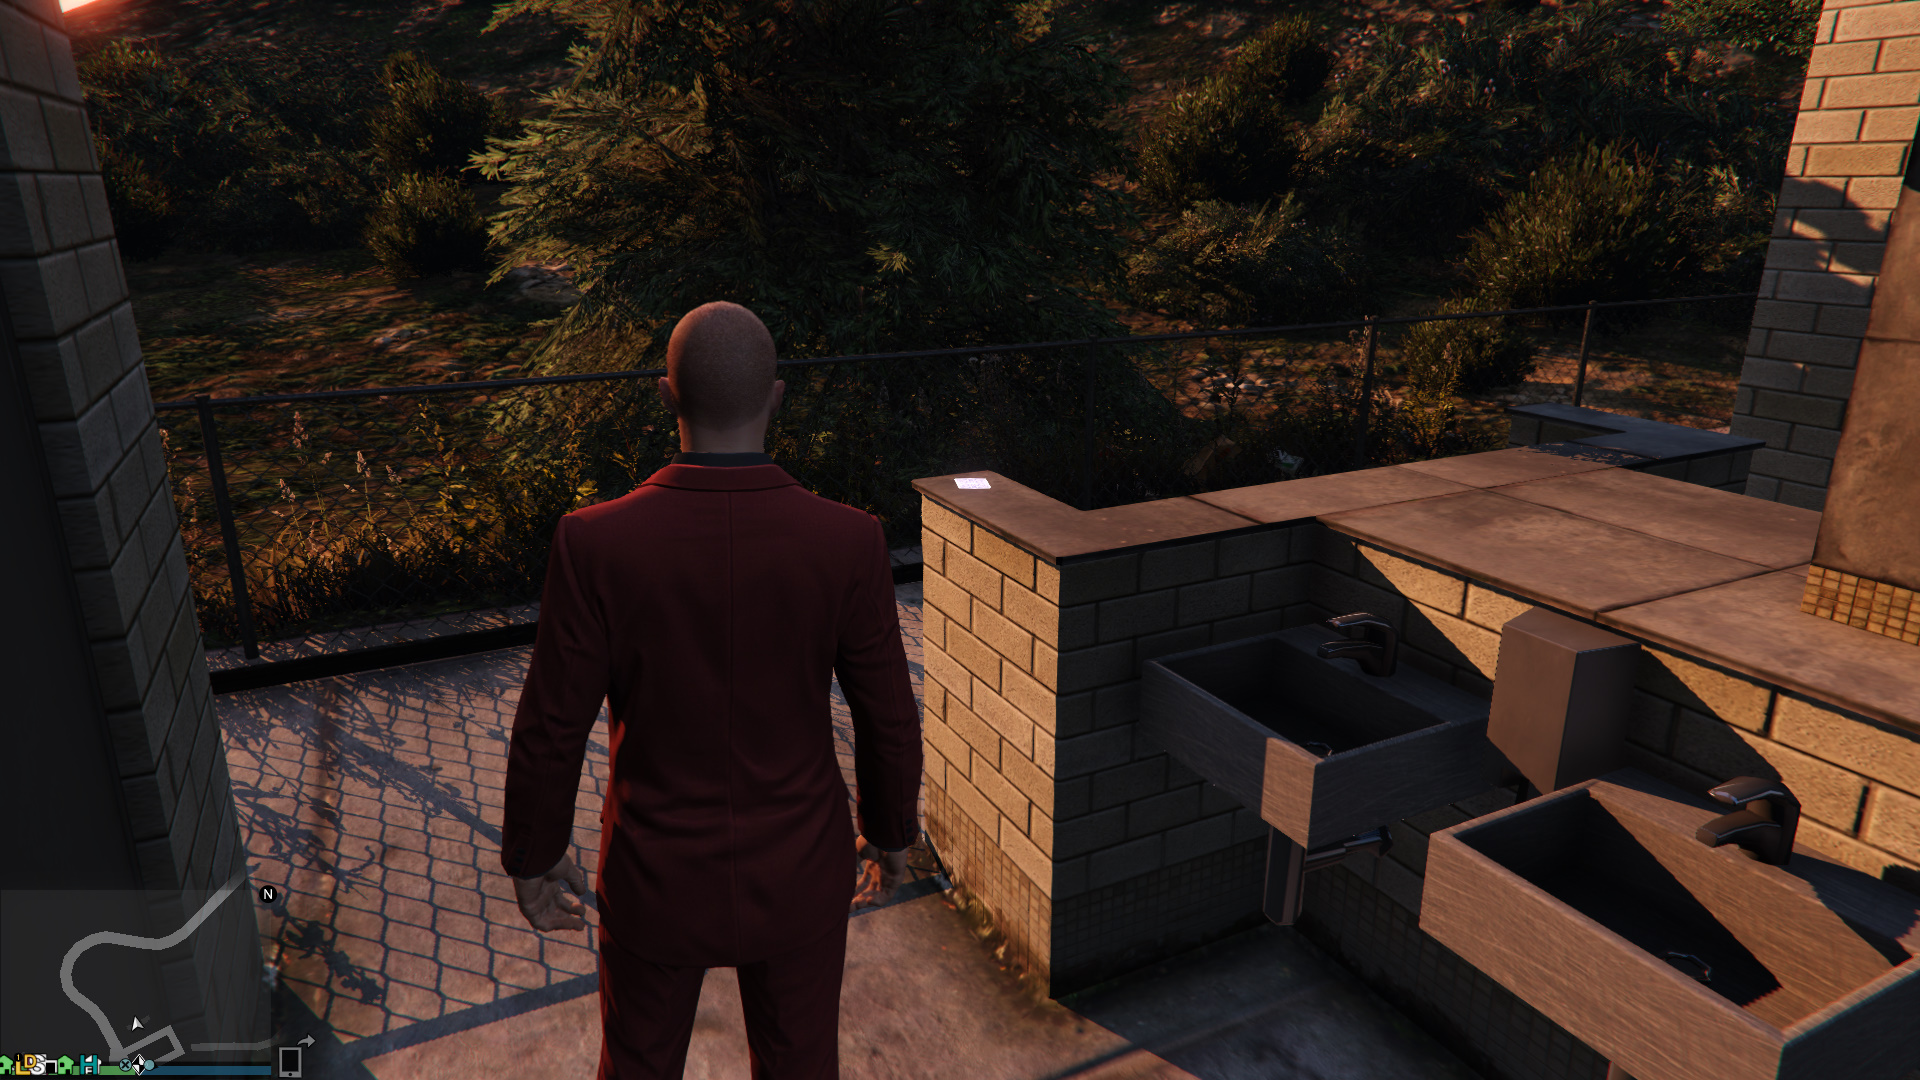 Playing Cards Locations in GTA Online